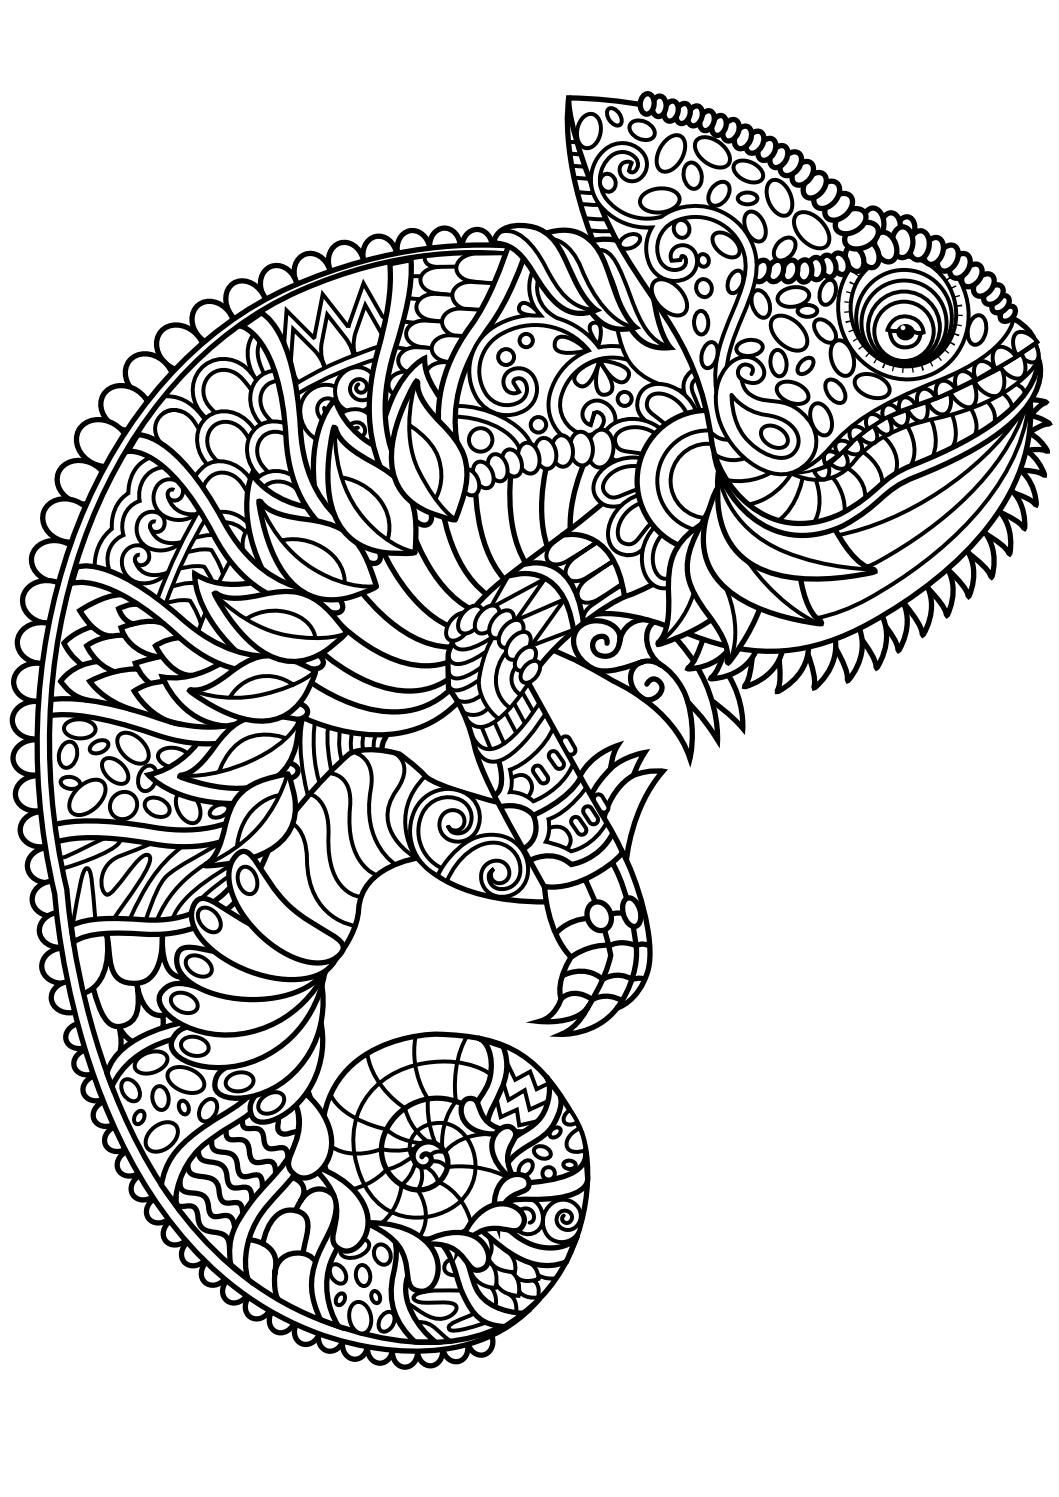 1059x1497 New Animal Coloring Pages Pdf Free Coloring Pages Download